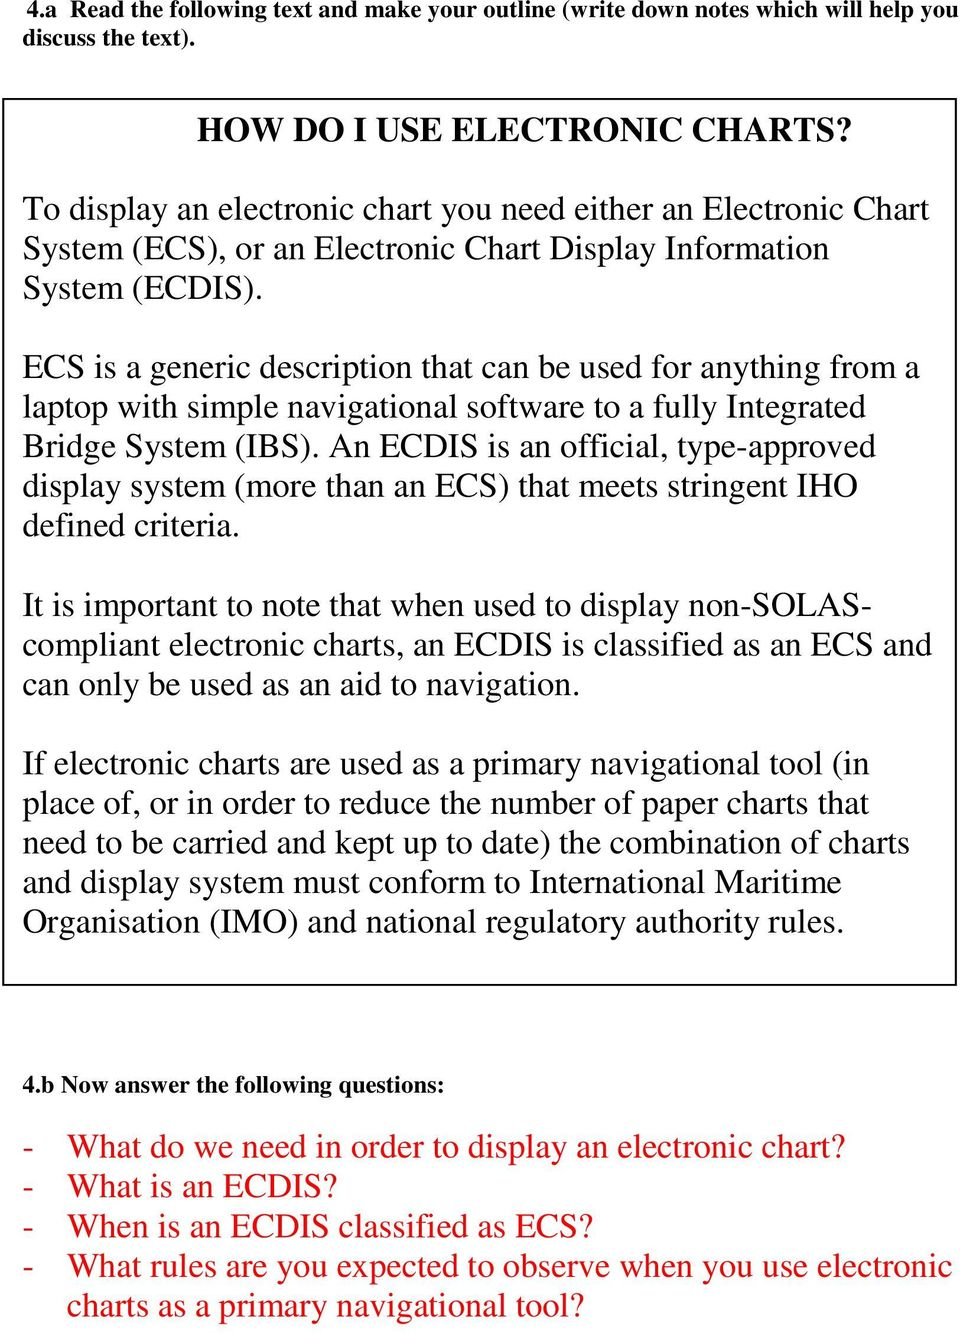 ECS is a generic description that can be used for anything from a laptop with simple navigational software to a fully Integrated Bridge System (IBS).